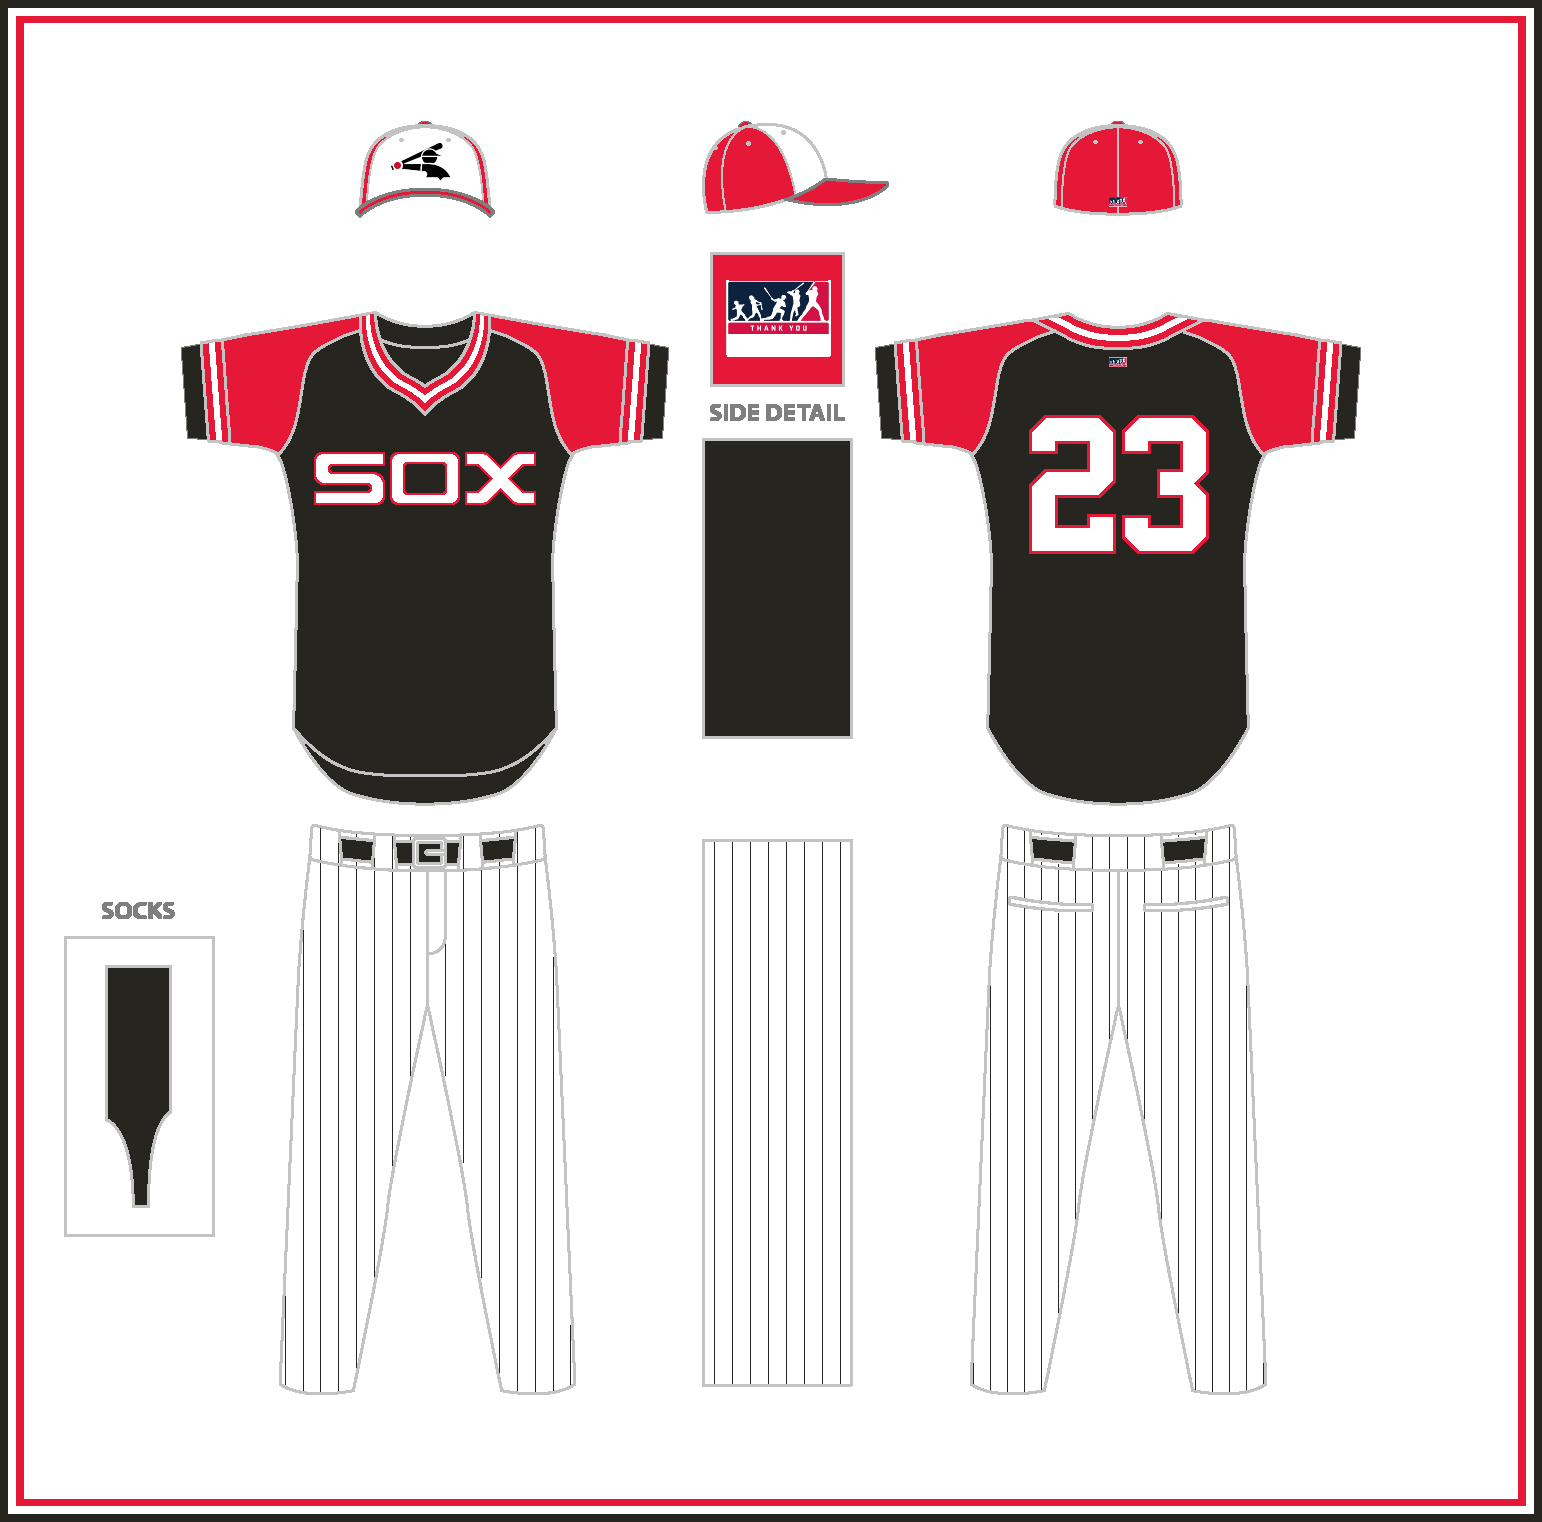 White_Sox_w_outlines.png